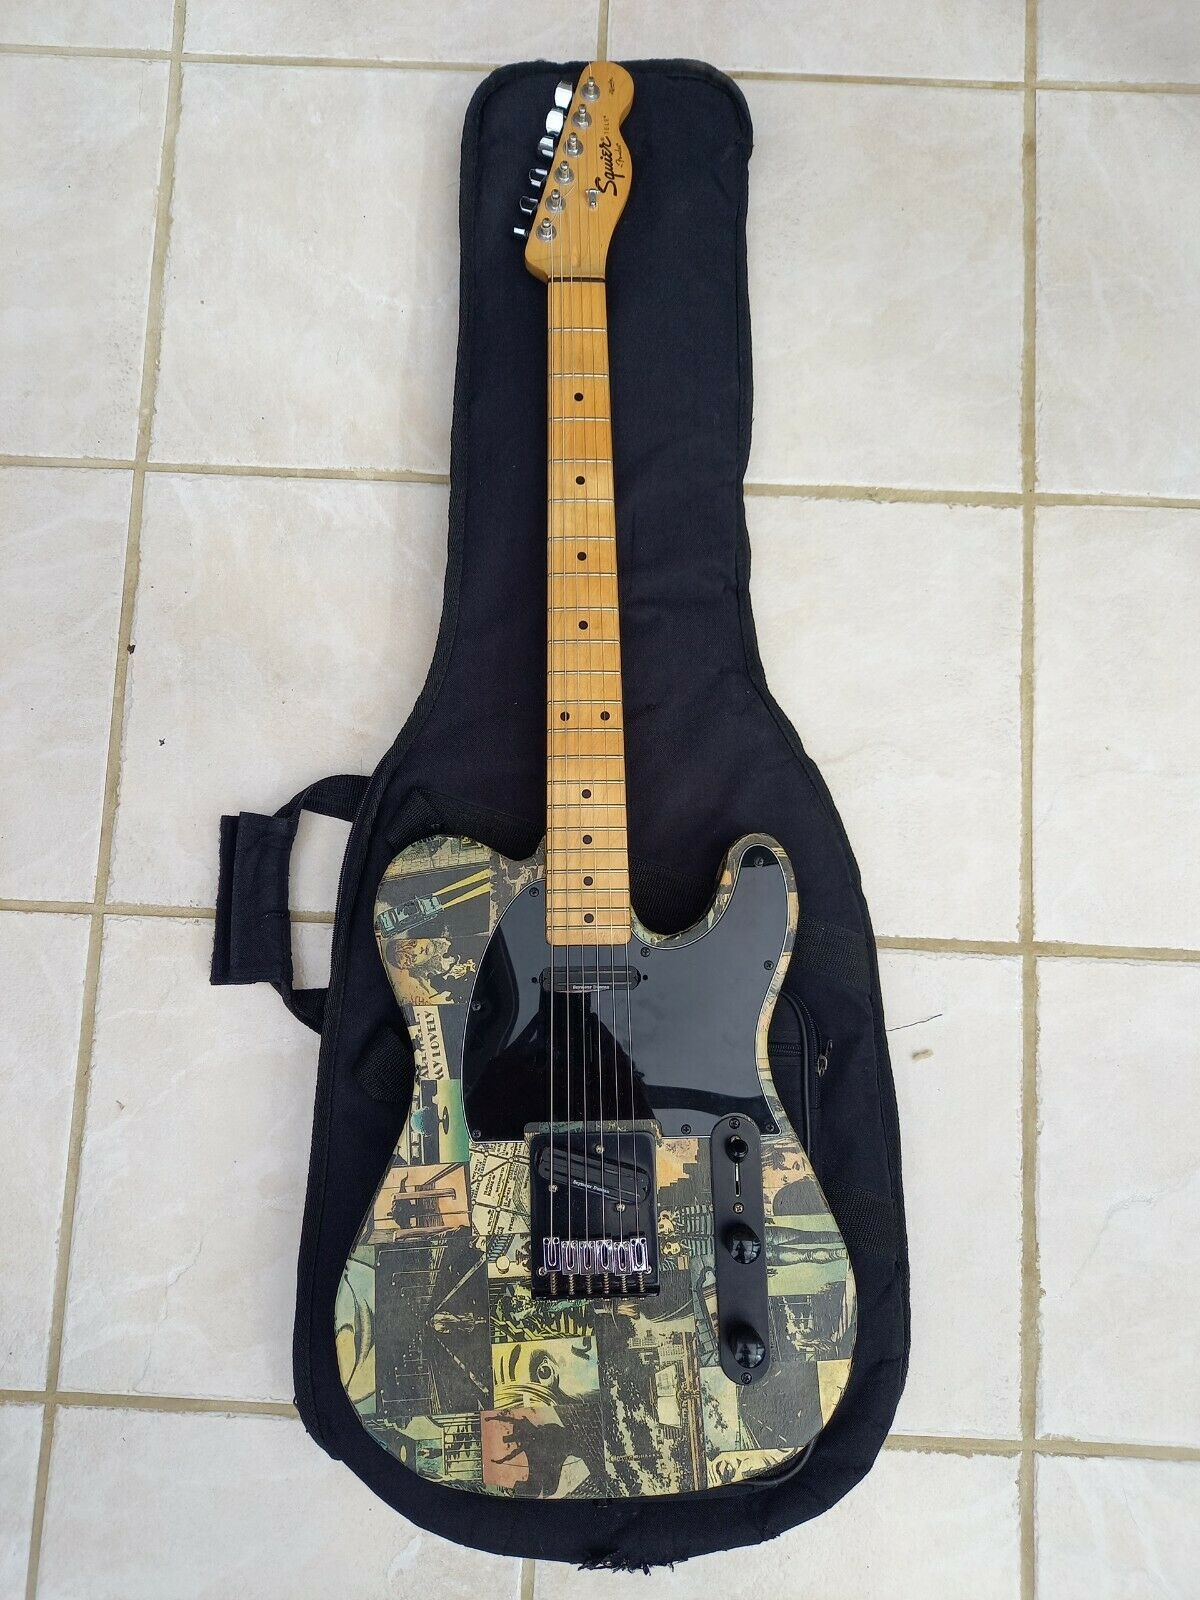 This Squier Telecaster electric guitar is for sale - Squier Affinity Telecaster Electric Guitar (China, 2009, with upgrades and mods)